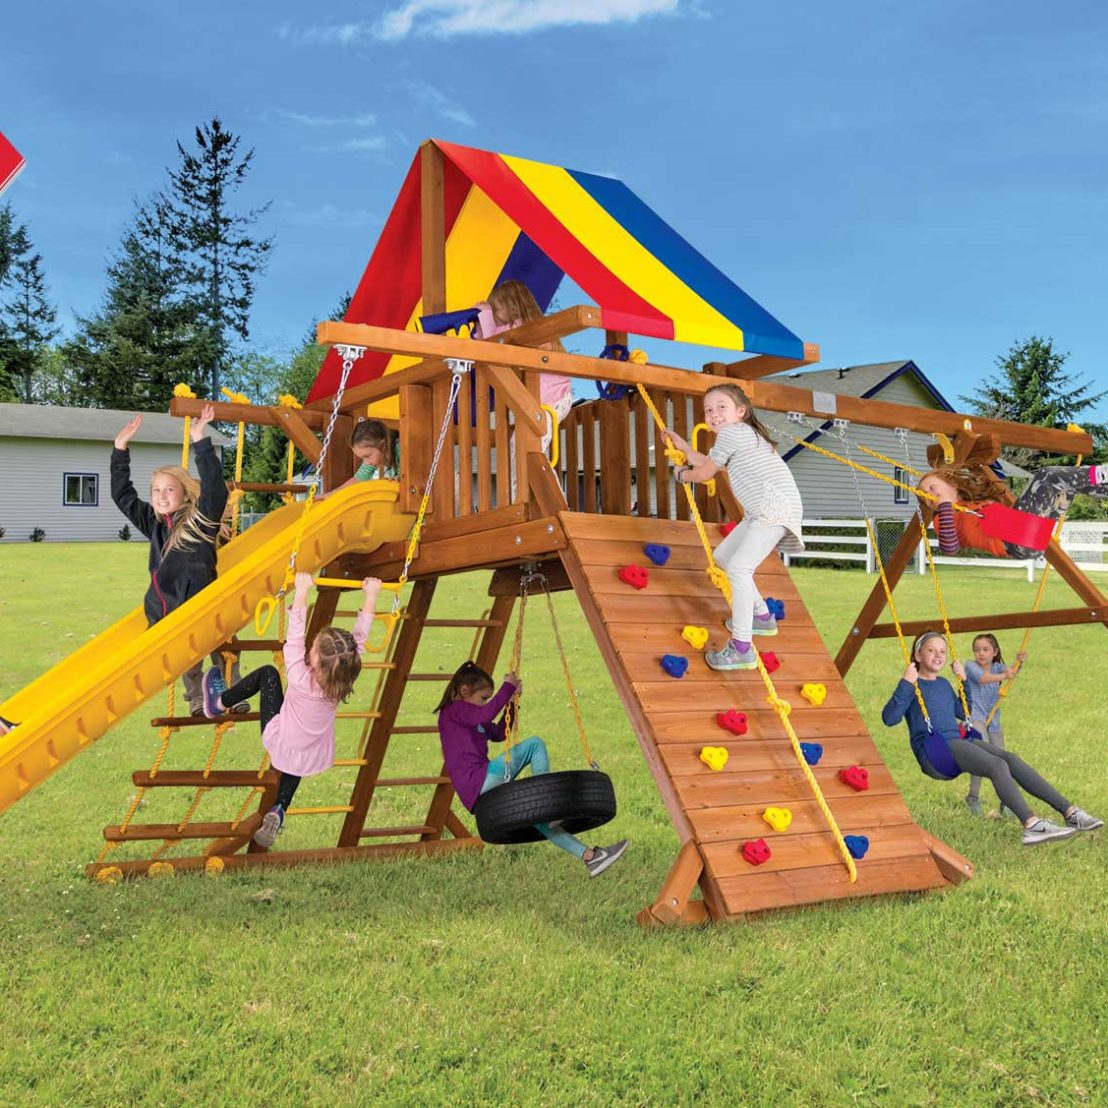 Circus Turbo Castle Pkg II with Scoop Slide Wooden Swing Set